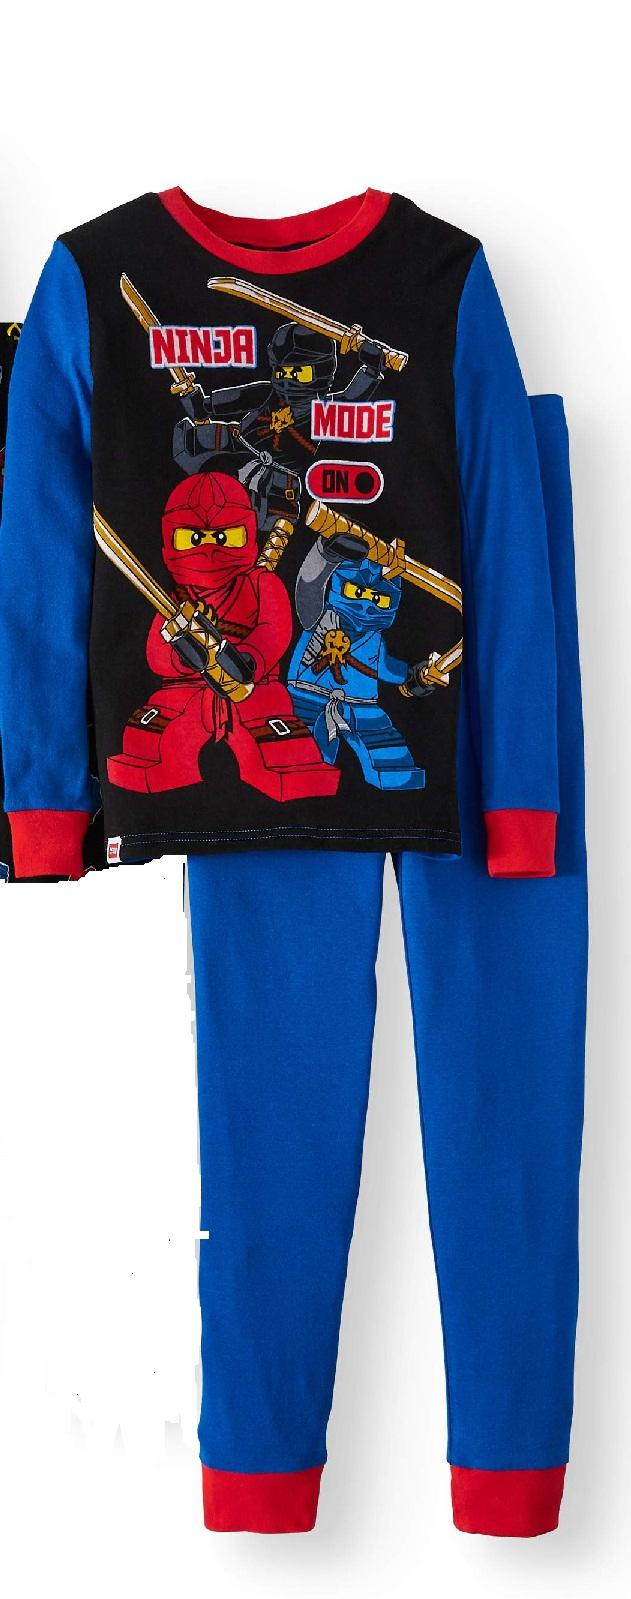 Lego Ninjago 2 Piece Pajama Longsleeves Set Get Big Discount Now! By Discount Store